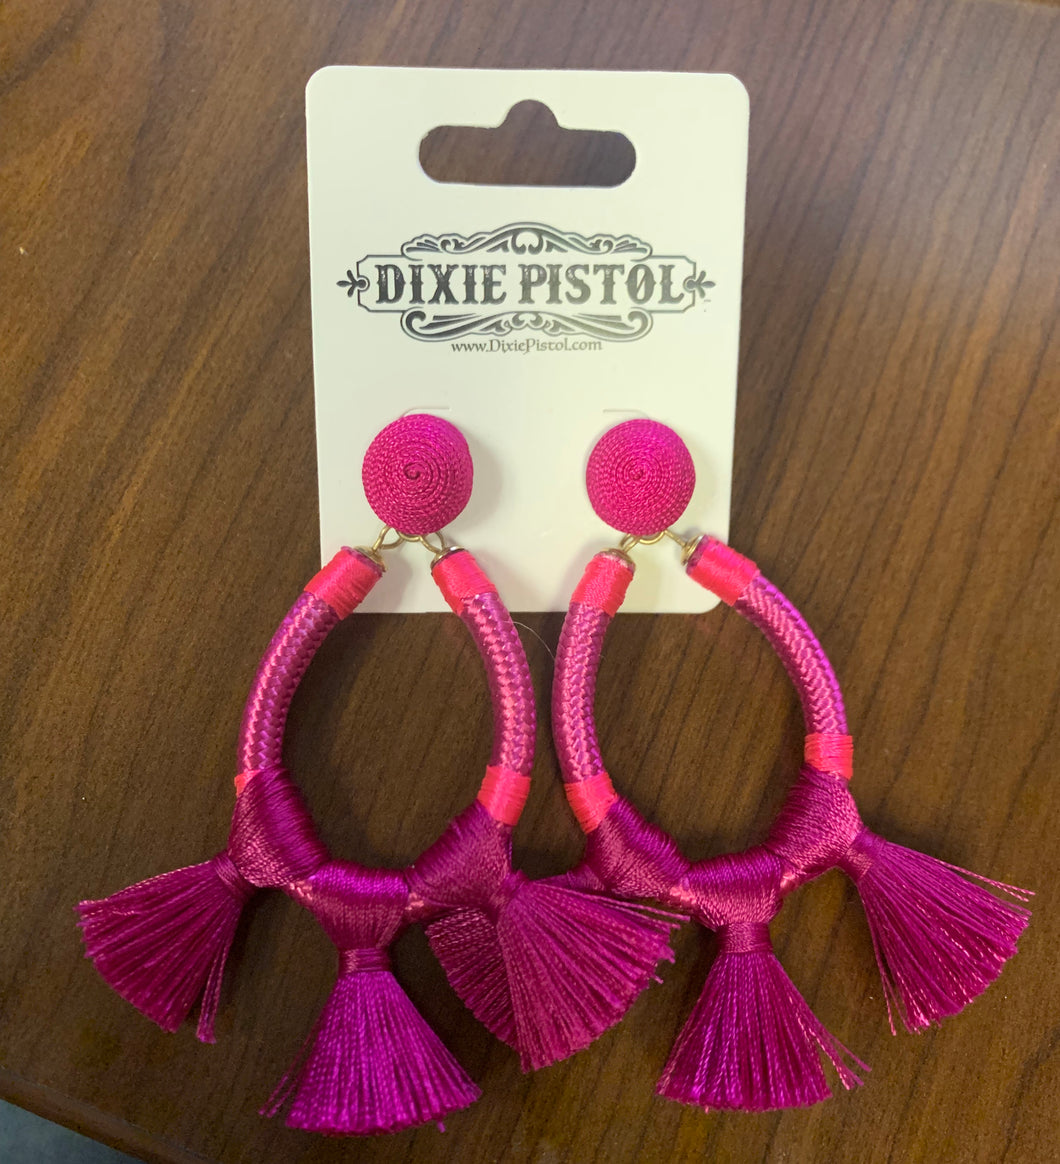 Fuschia Glam Girl Earrings